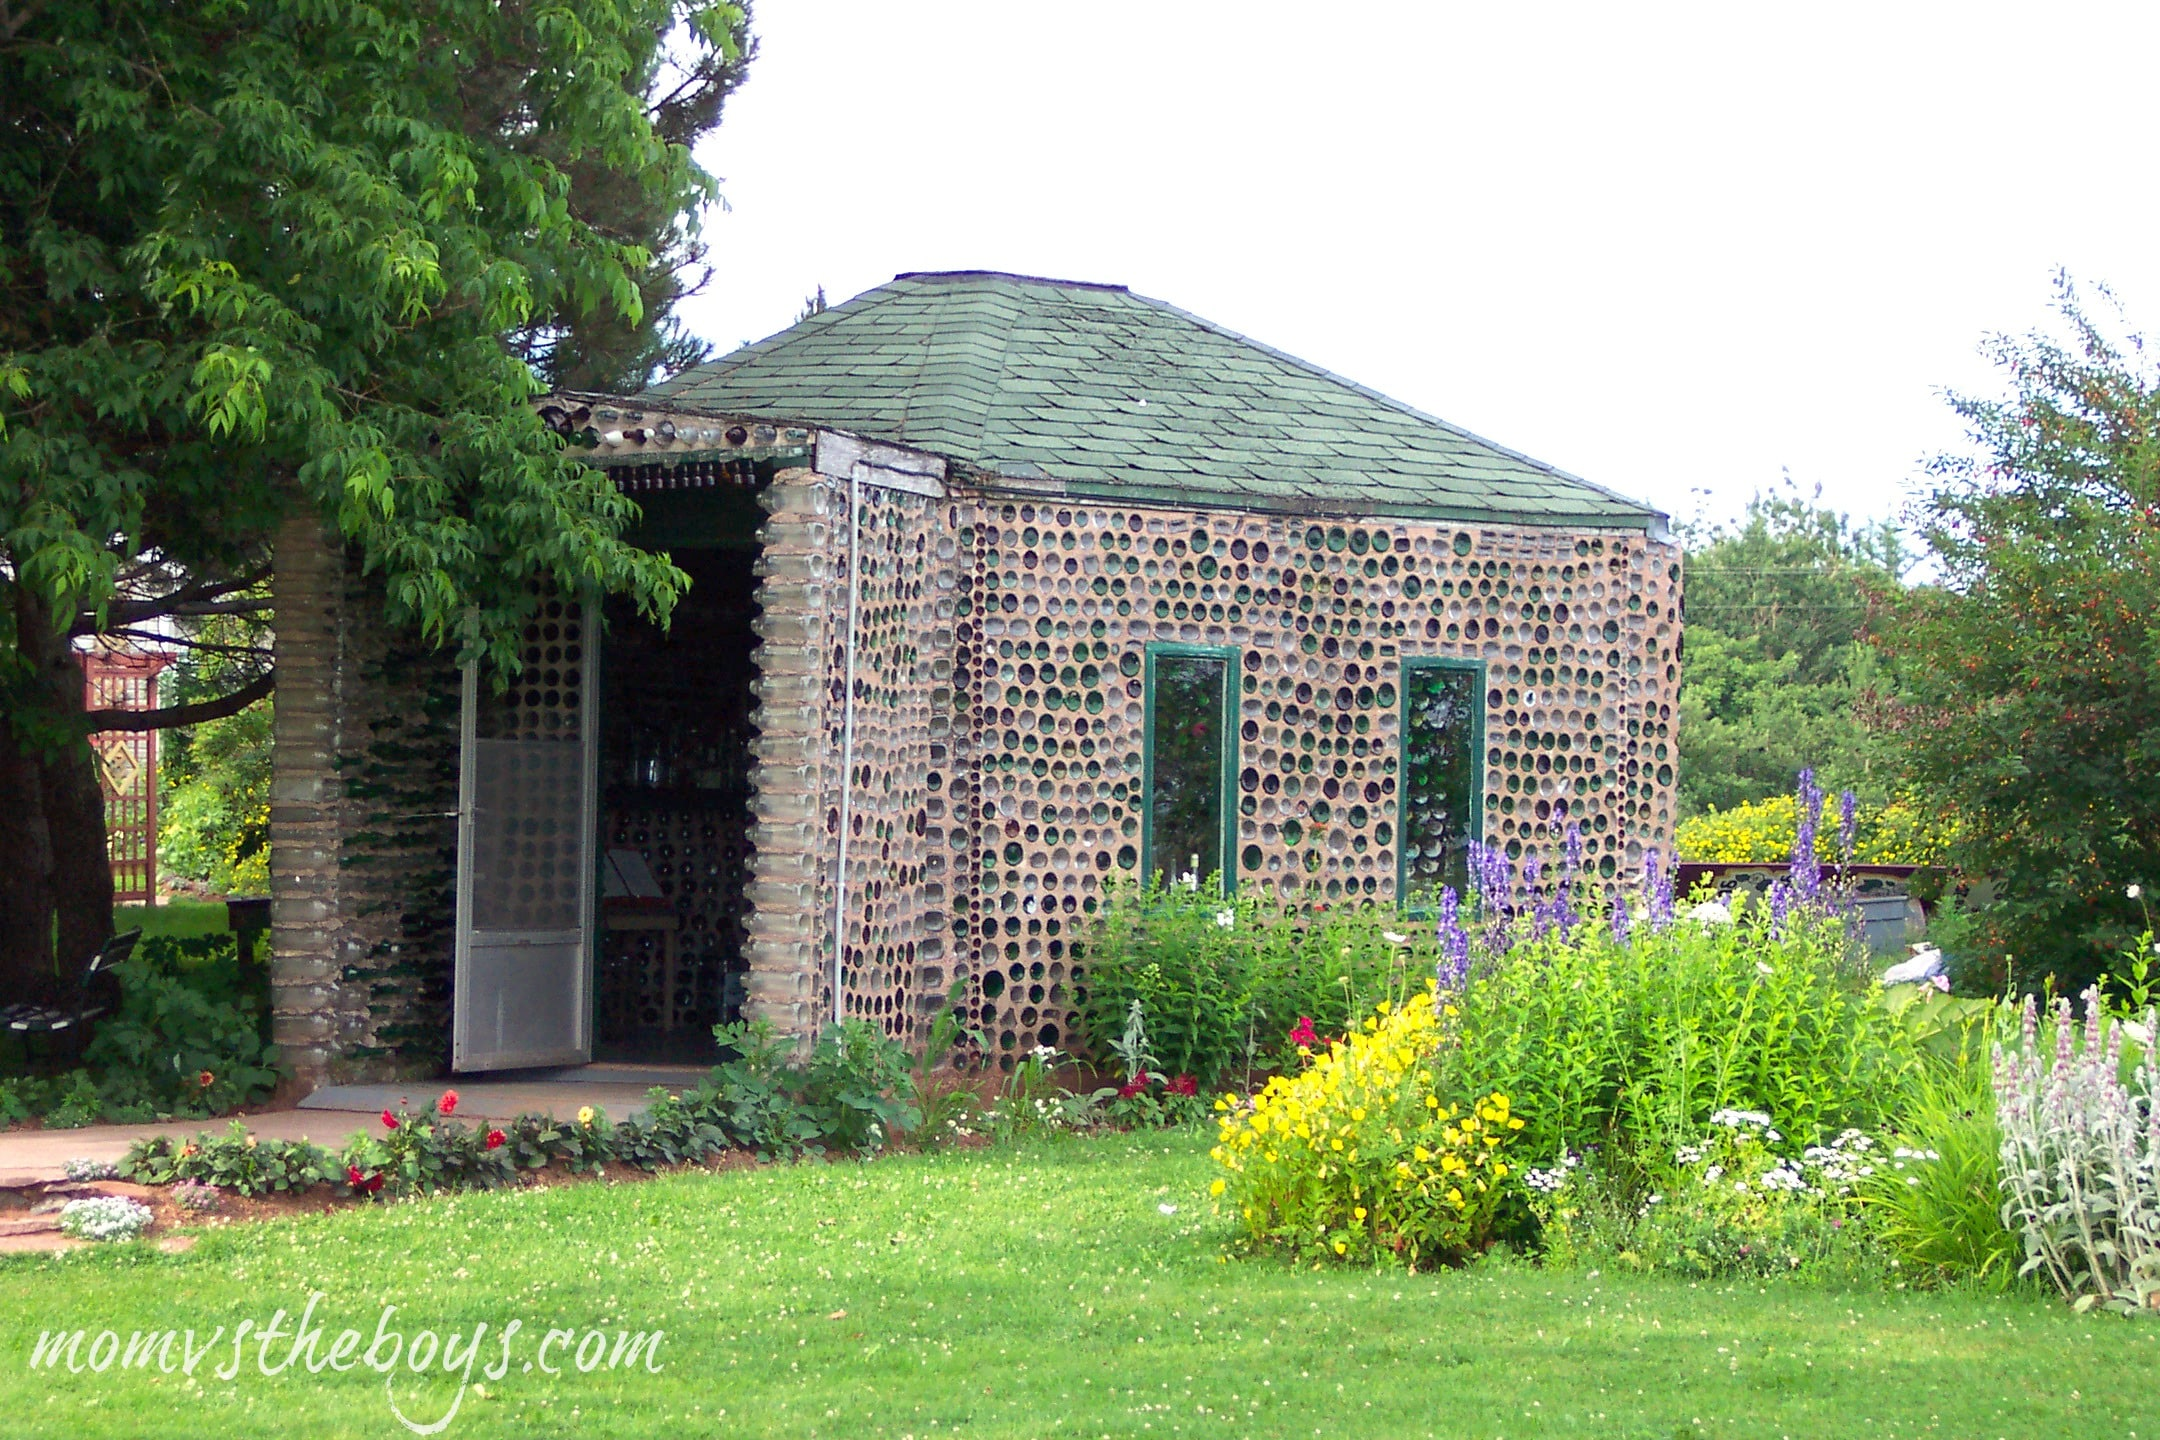 The glass bottle houses of prince edward island mom vs for Pei home builders